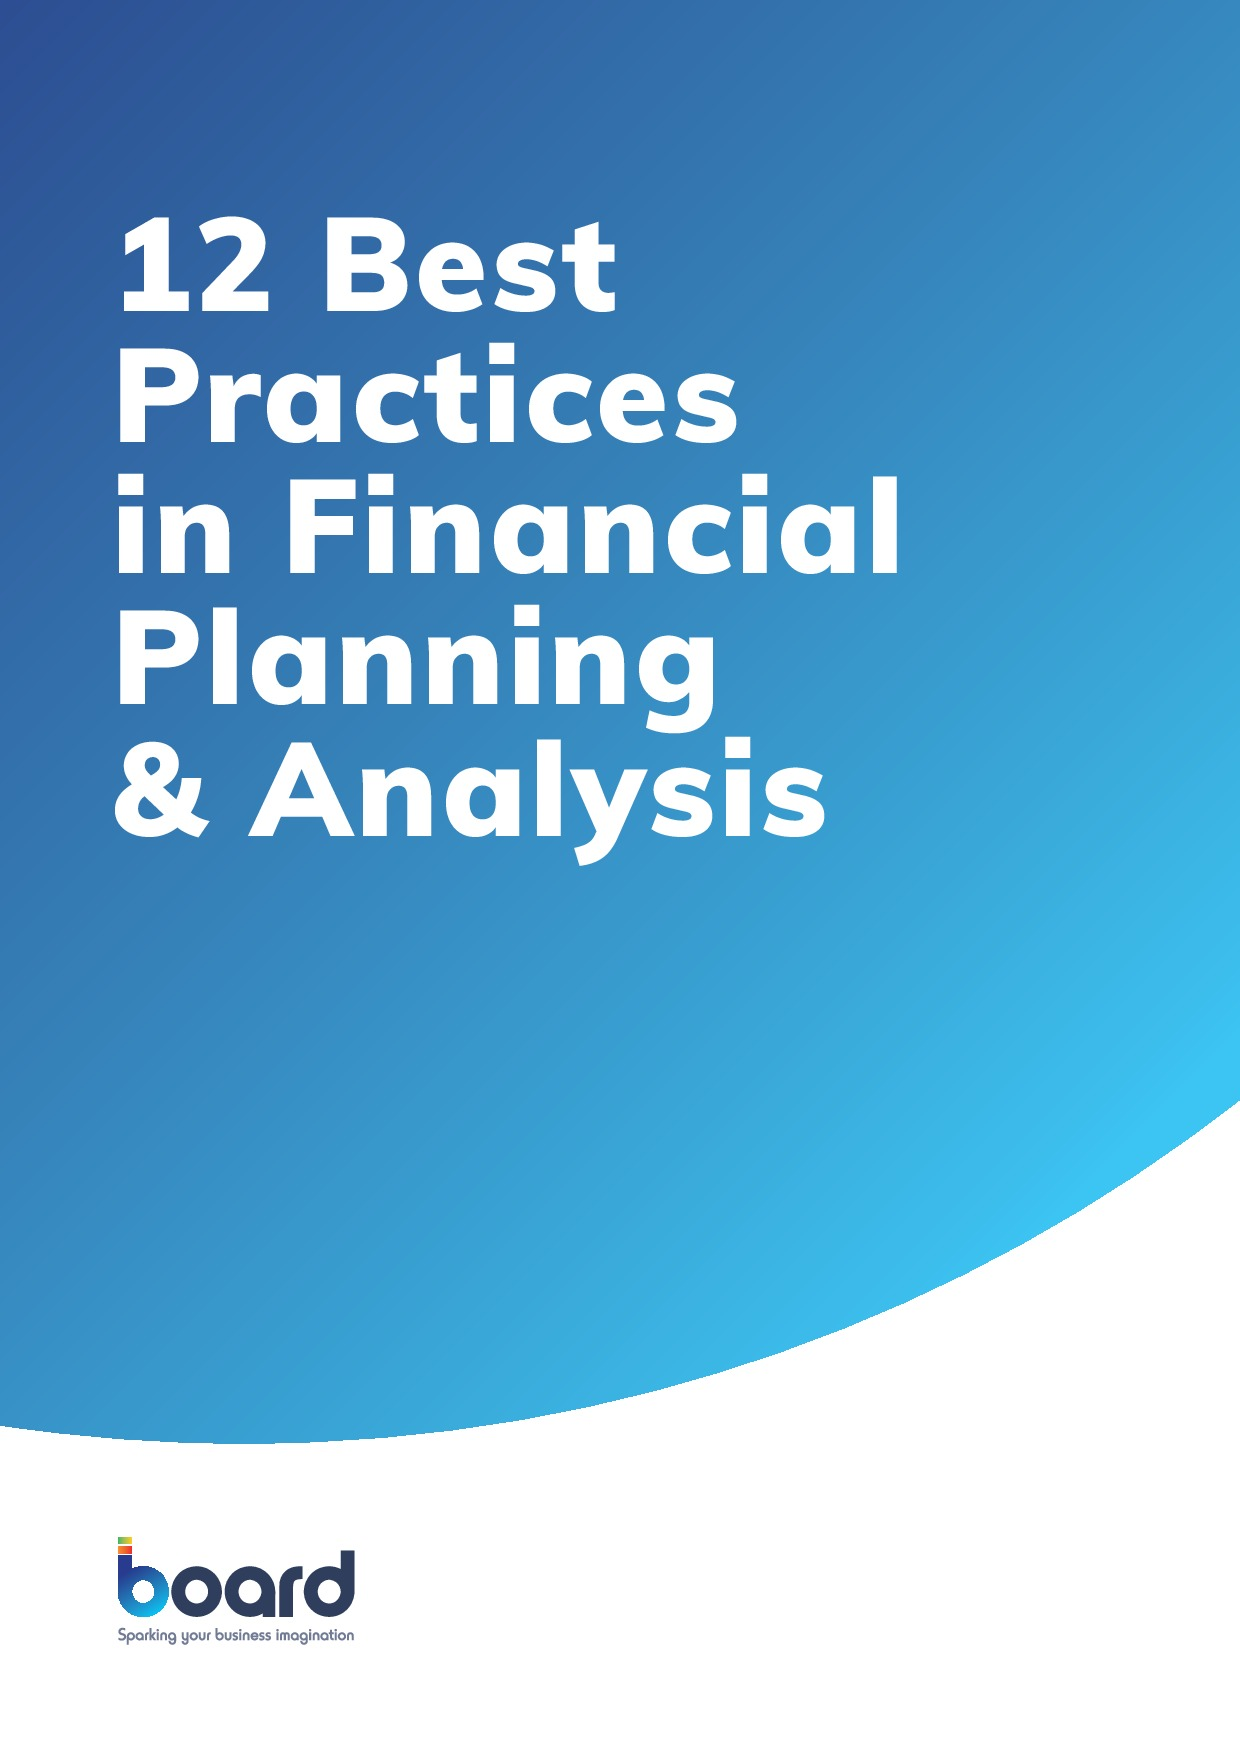 12 Best Practices in FP&A | Page 1